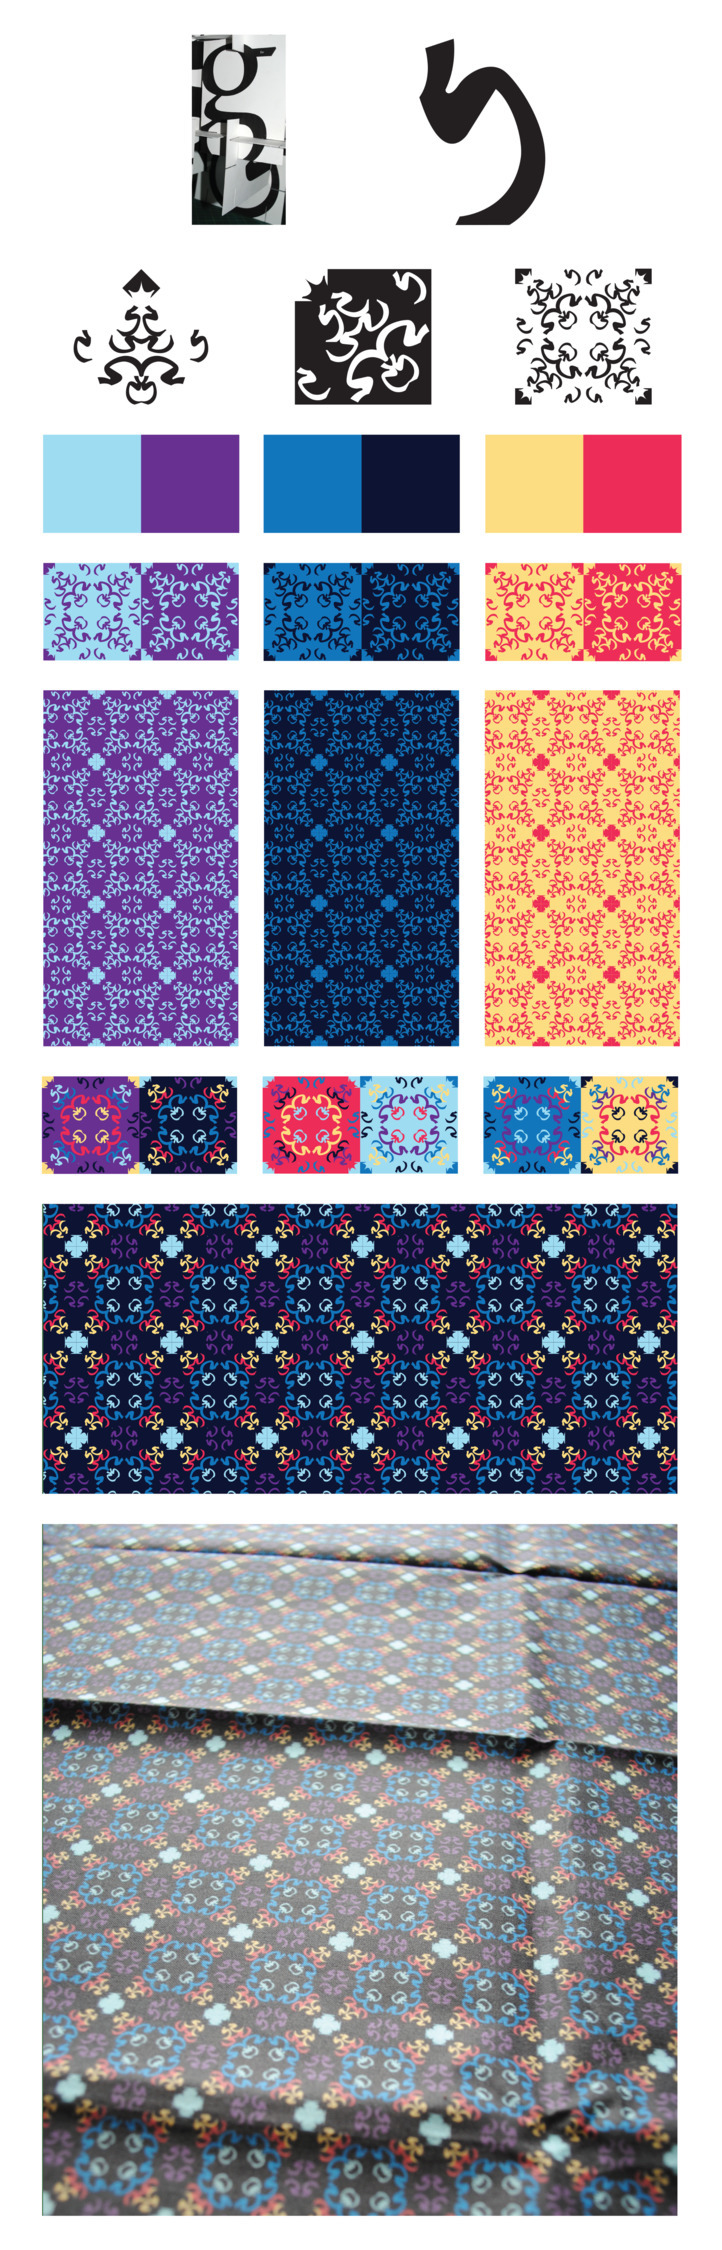 pattern design project created  - jaslee-3873 | ello